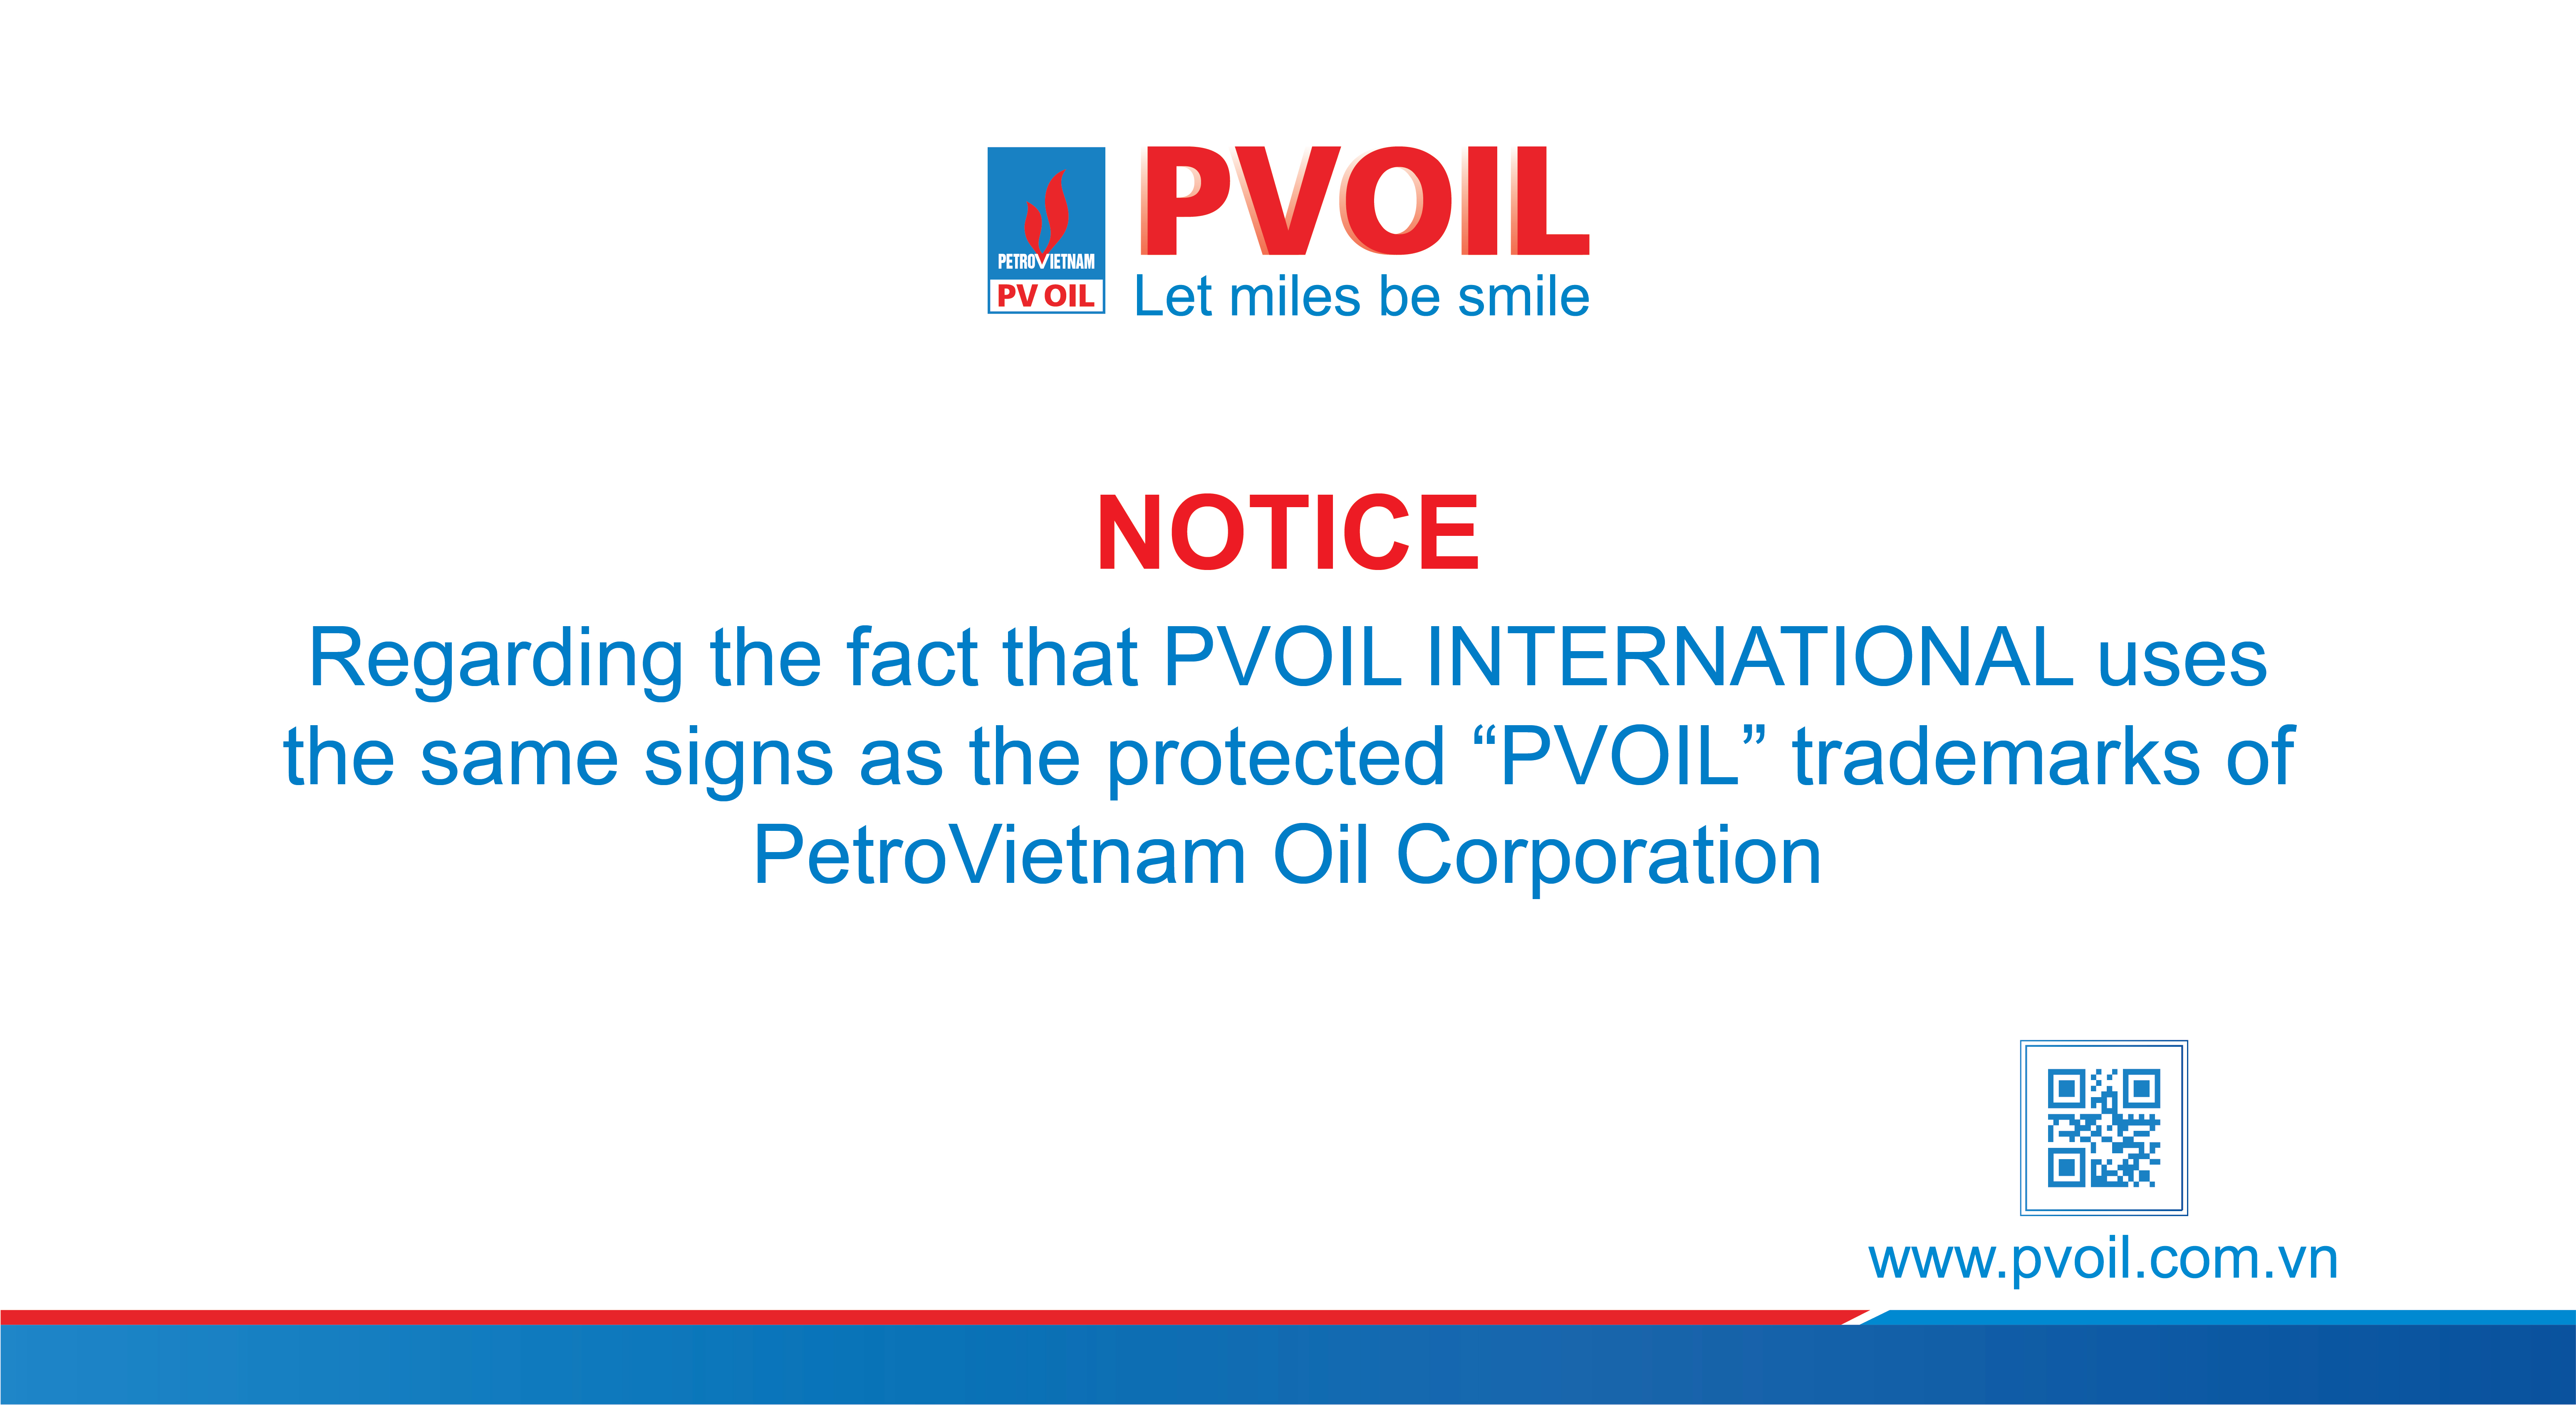 "Notice: Regarding the fact that PVOIL INTERNATIONAL uses the same signs as the protected ""PVOIL"" trademarks of PetroVietnam Oil Corporation"